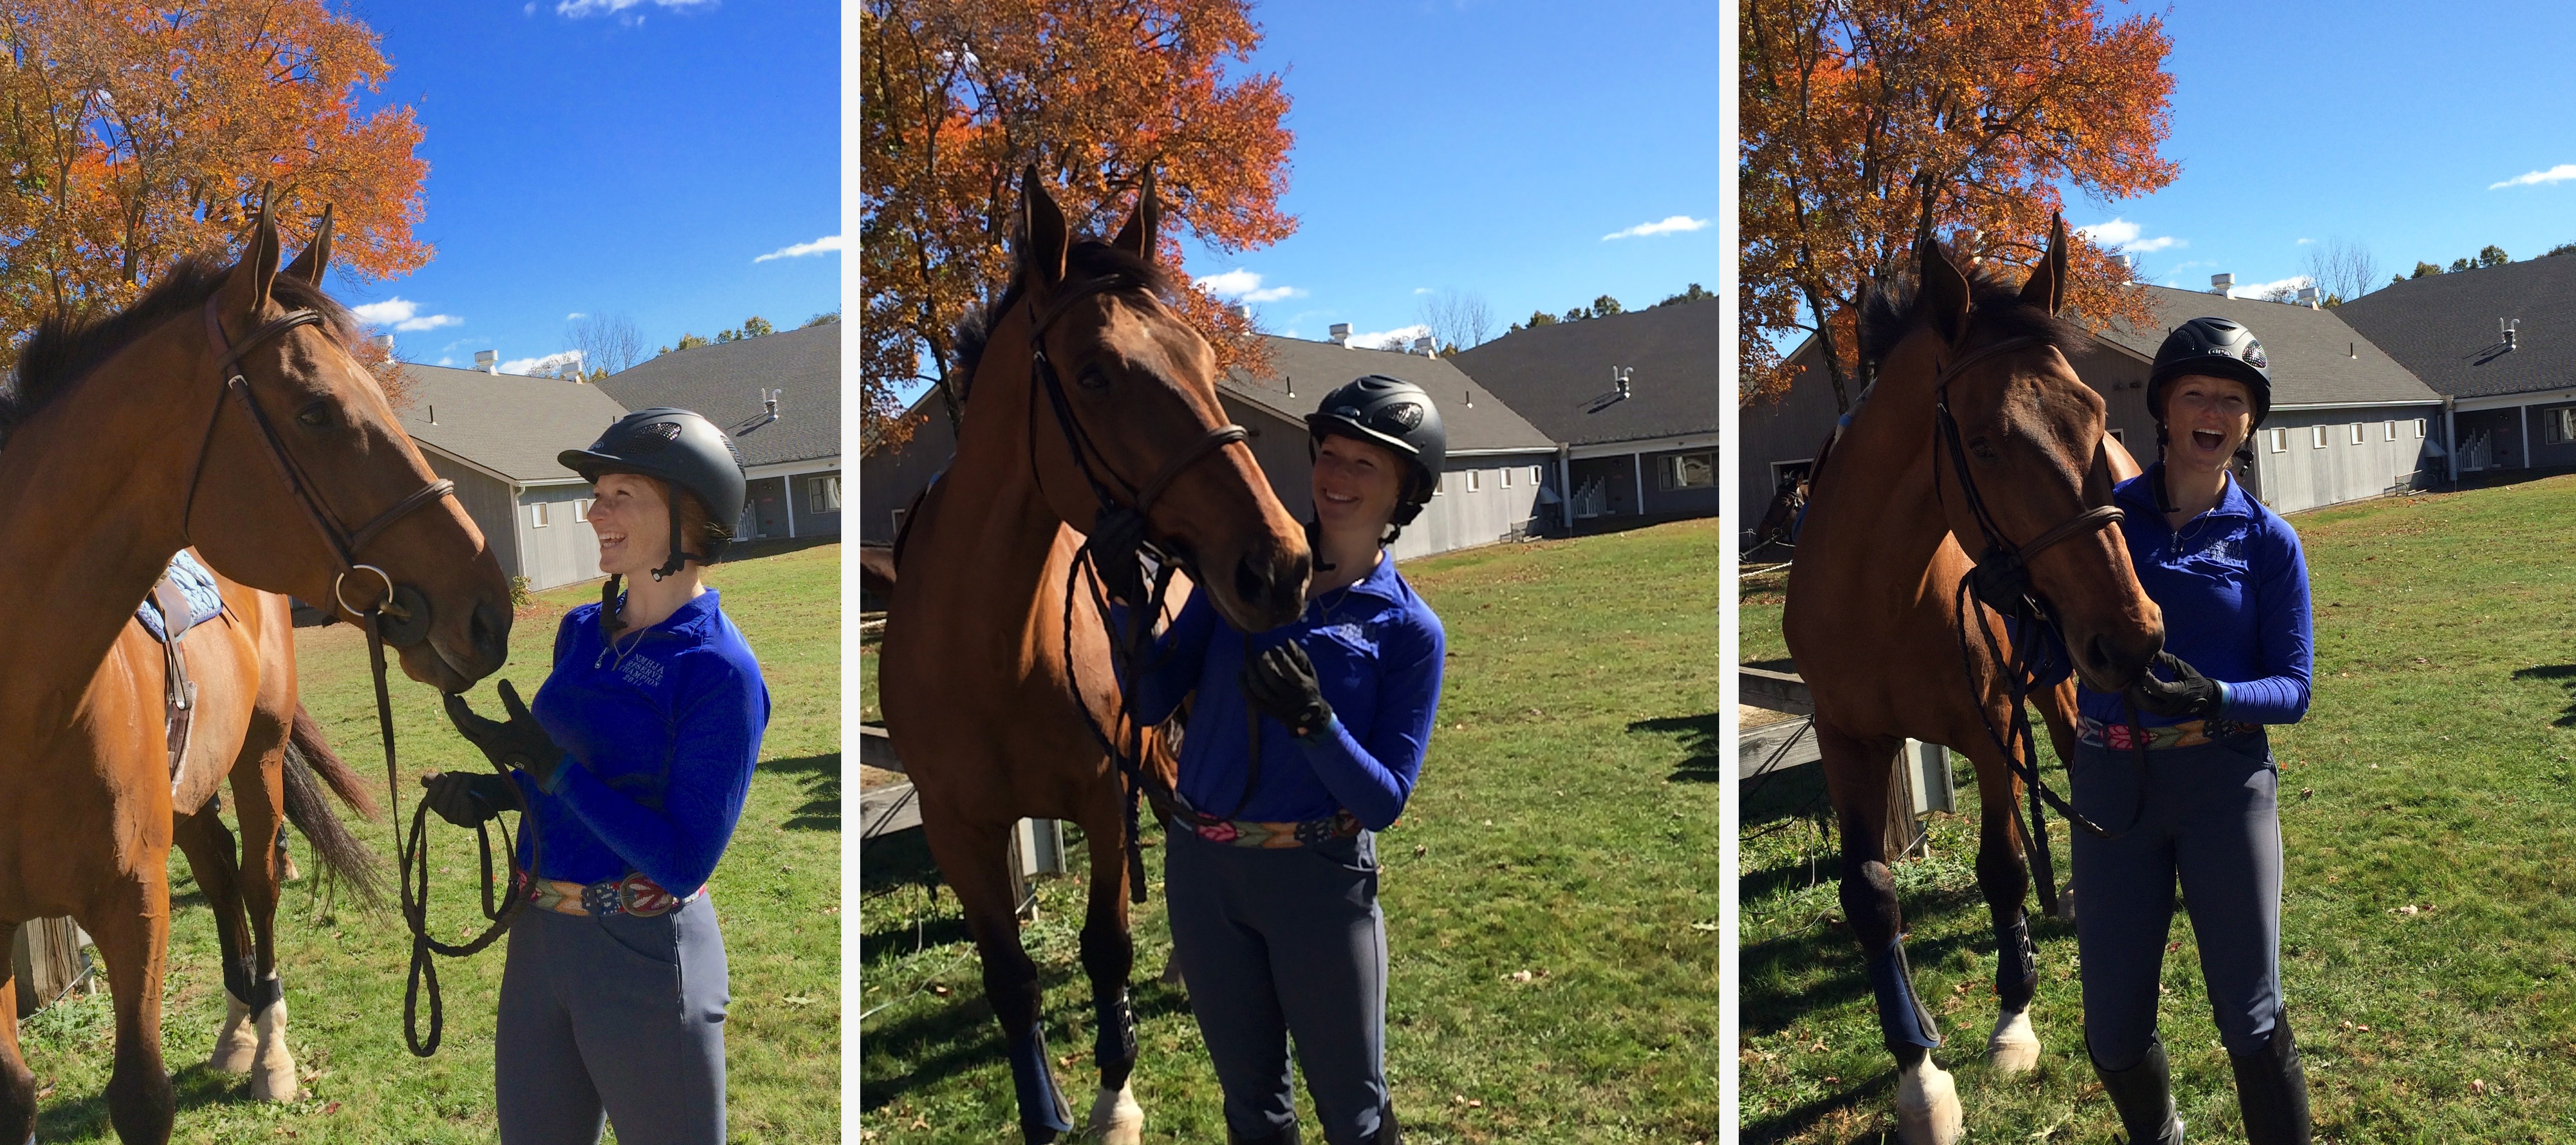 Maddy Skrak '18 having some fun with the much loved Ronaldo